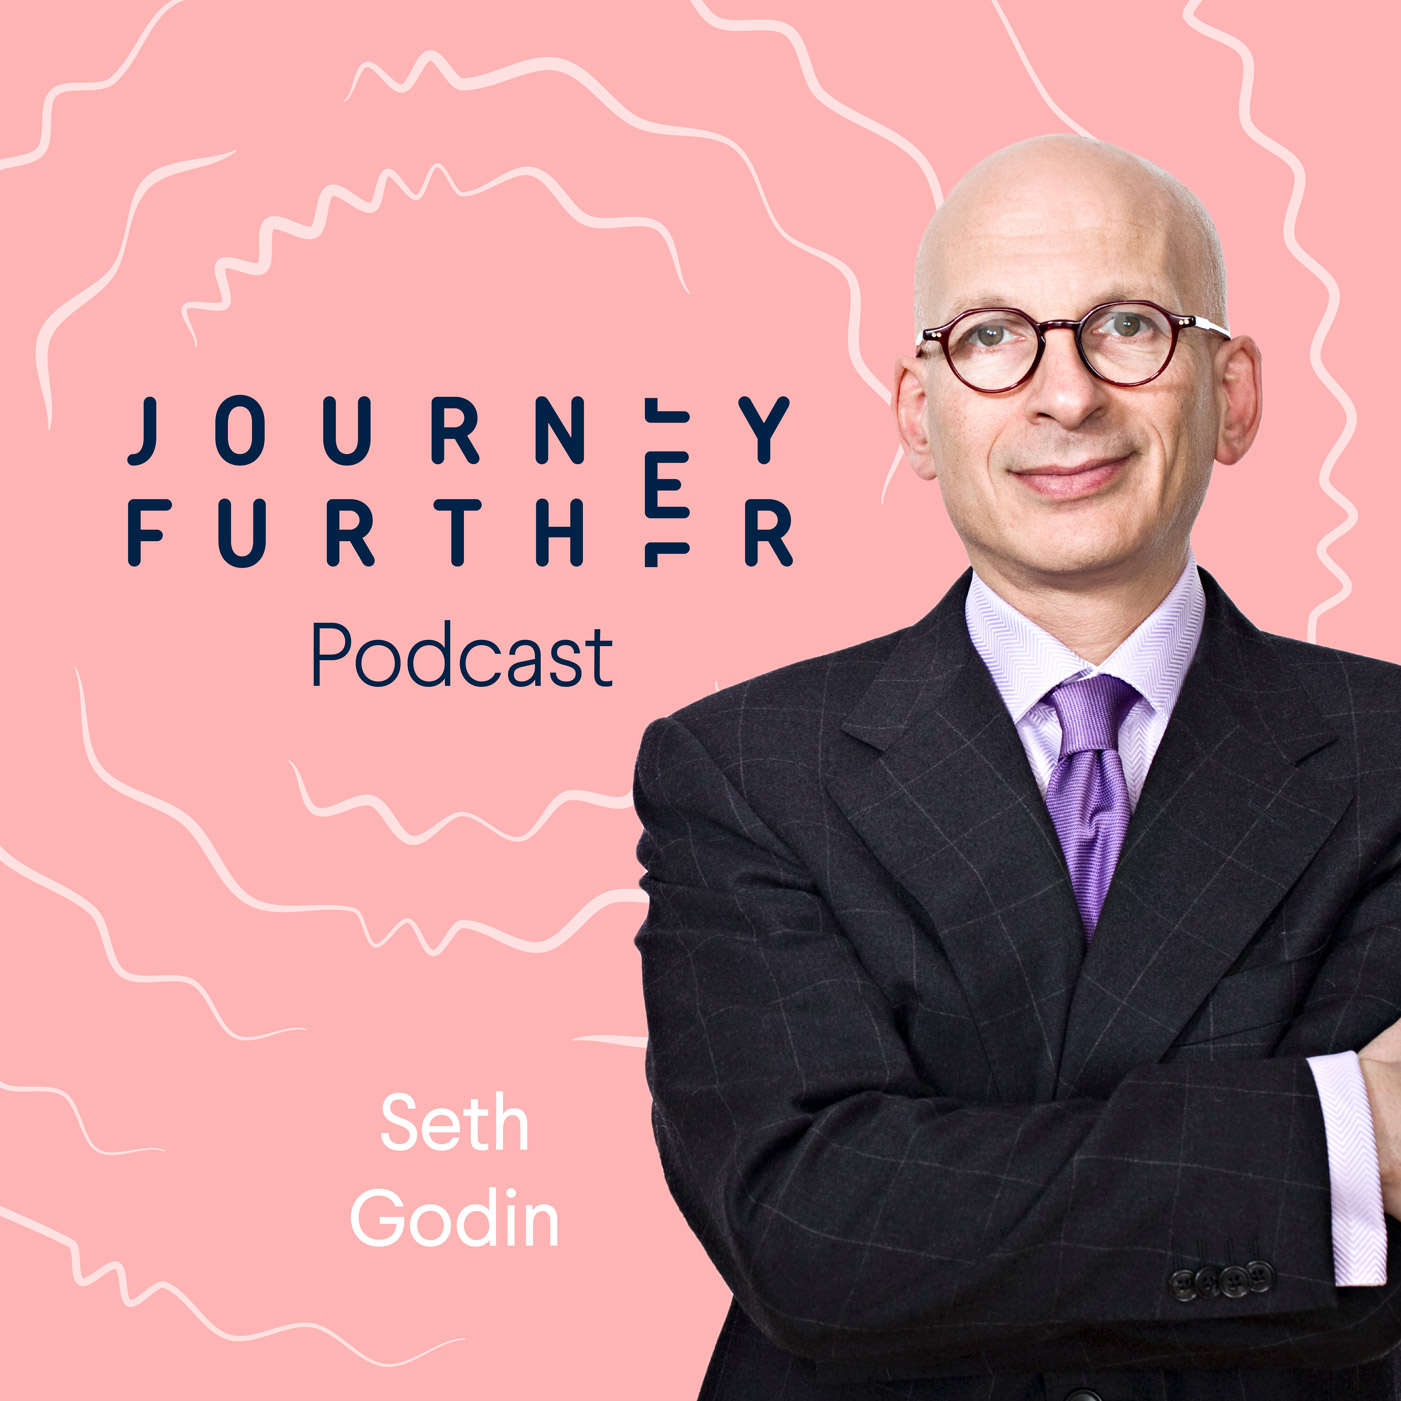 The Practice: Shipping Creative Work with Seth Godin